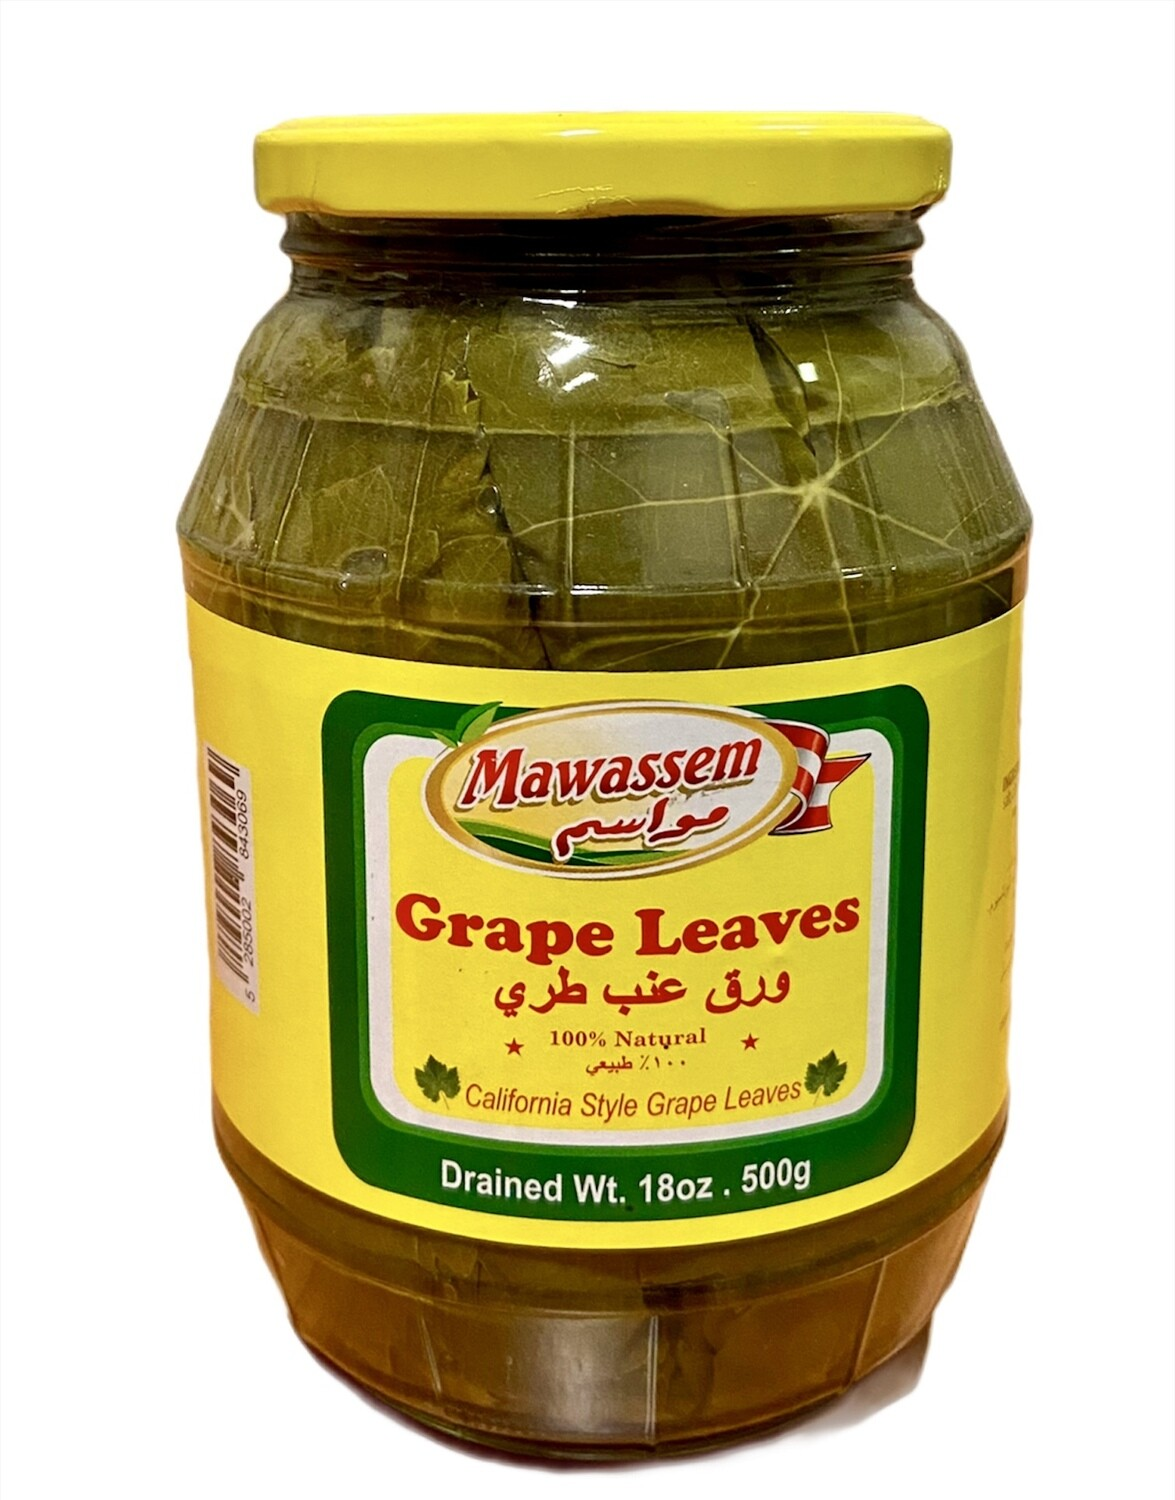 Mawassem Grape Leaves 12 x 500g